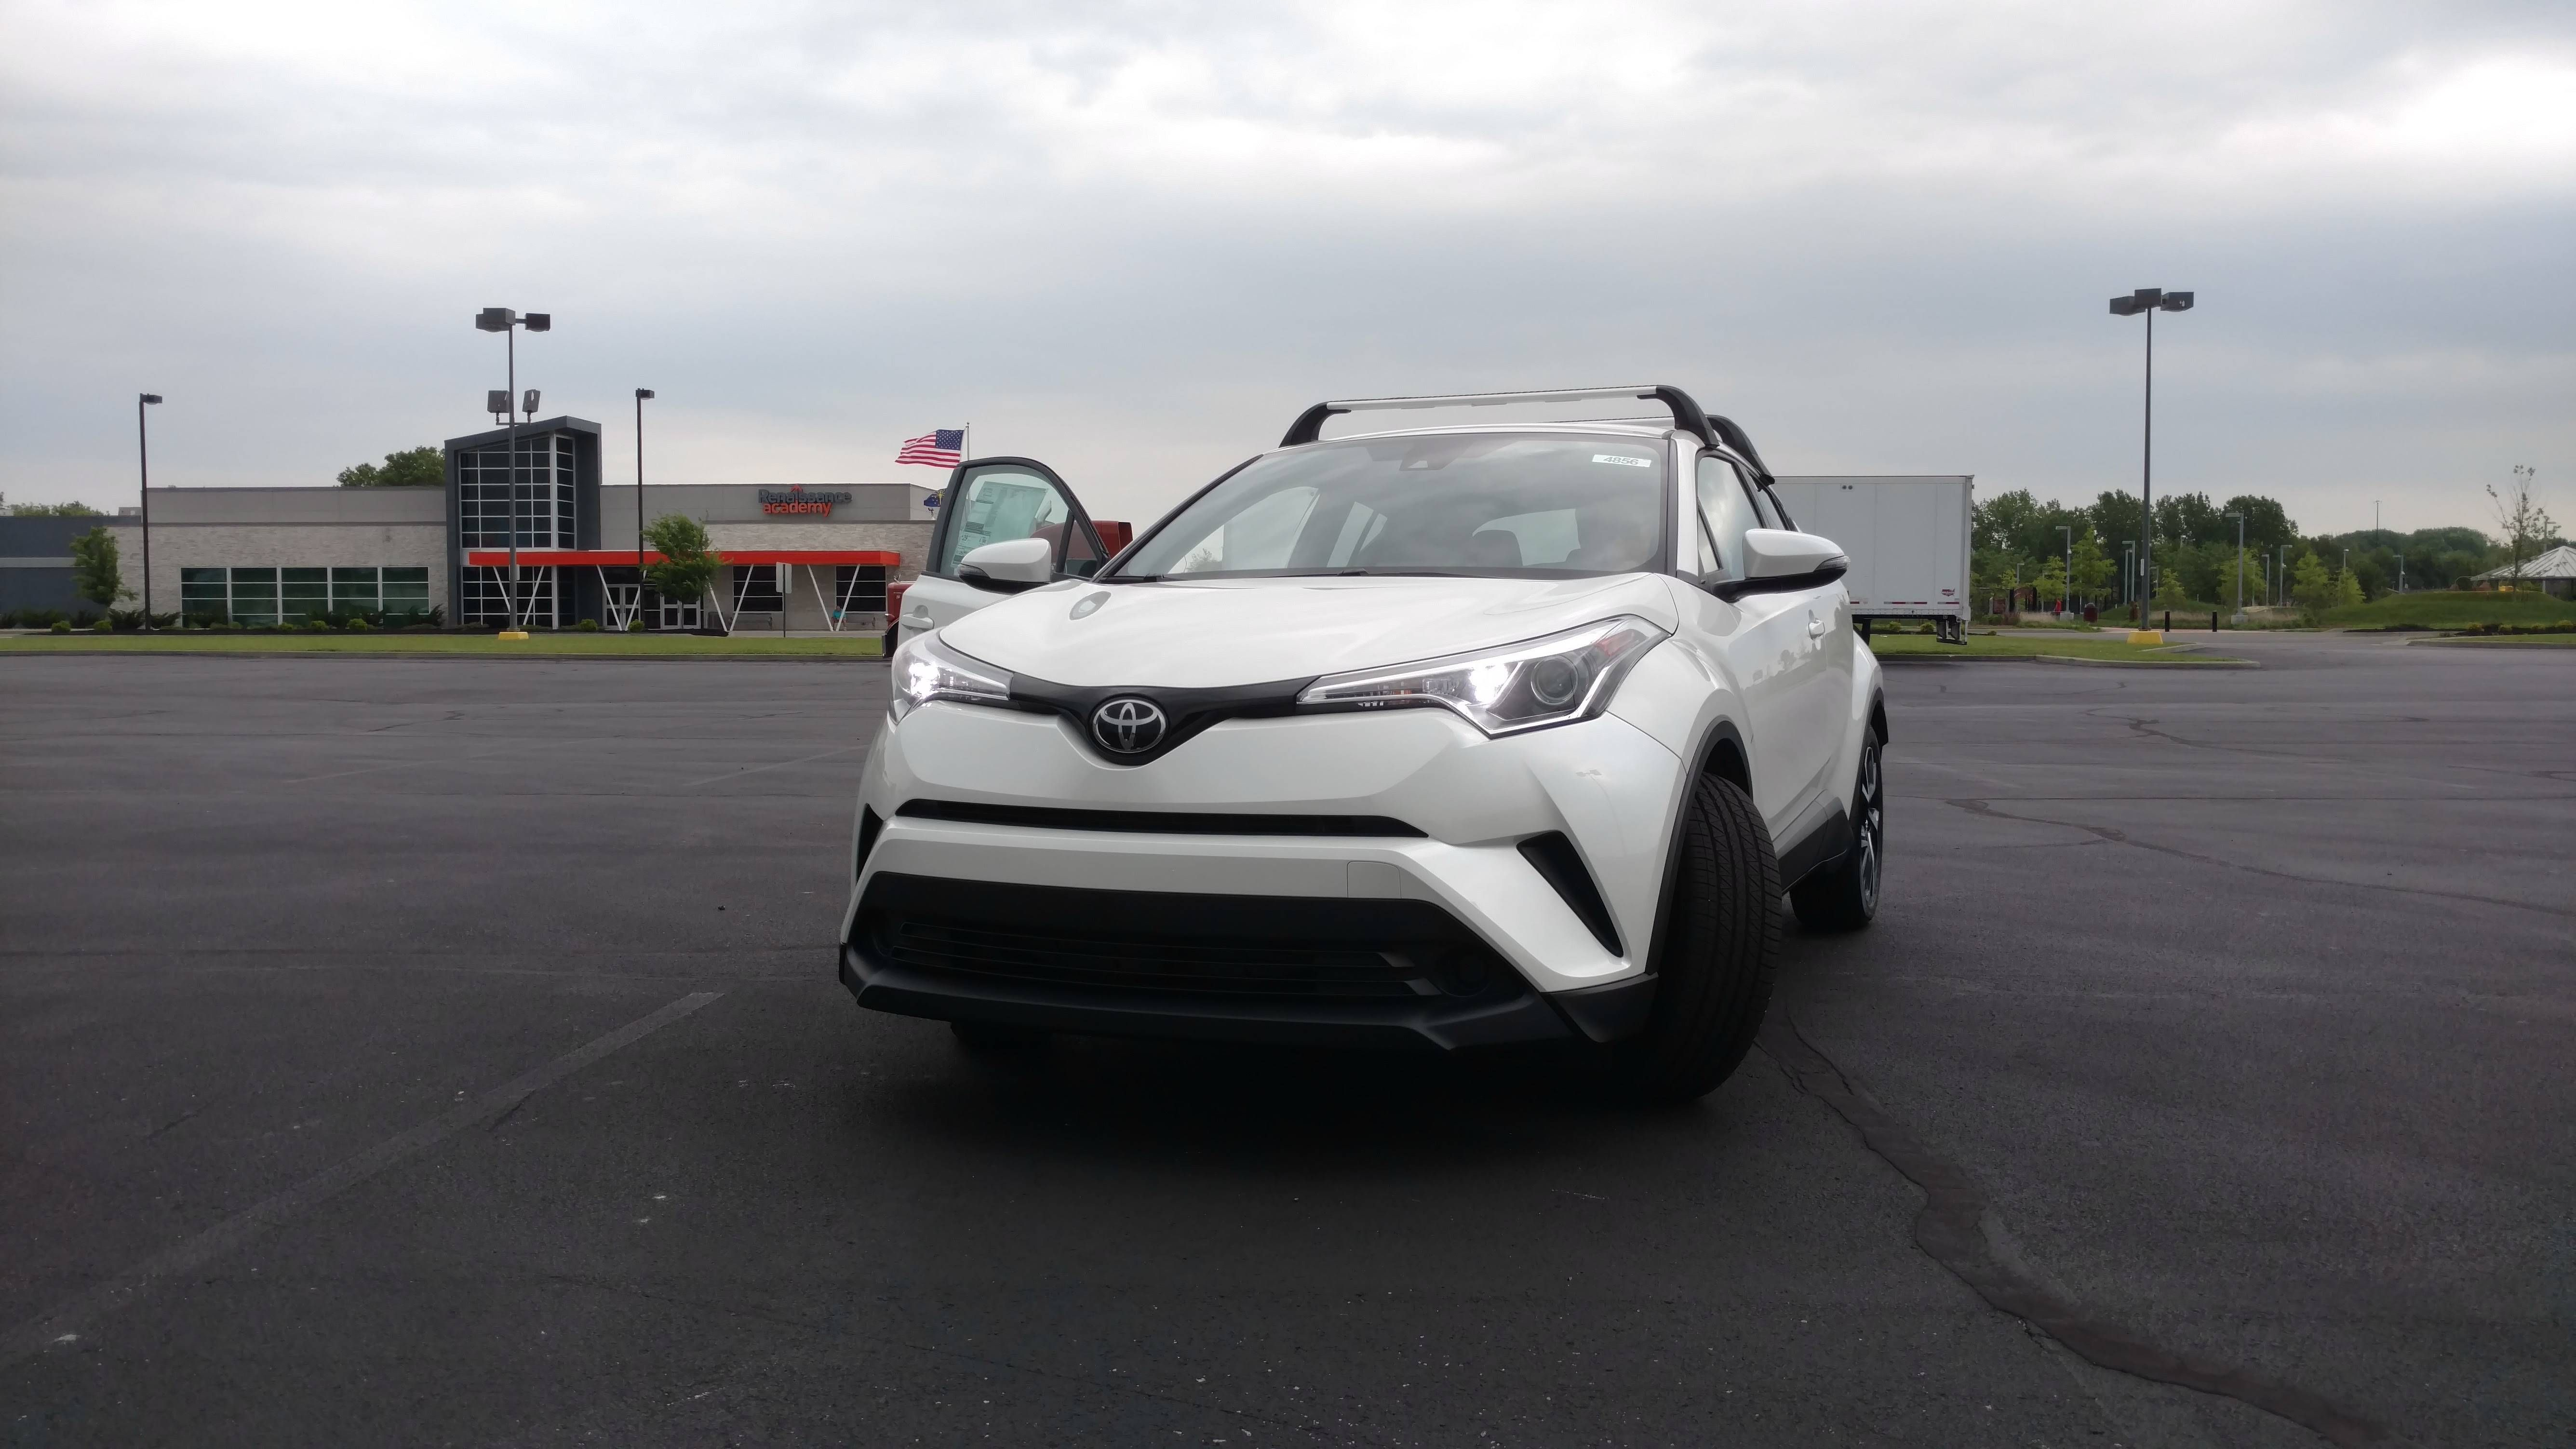 I test drove a c-hr yesterday (Clarksville Indiana) AMA #Toyota #cars #RAV4 #car #Prius #Corolla